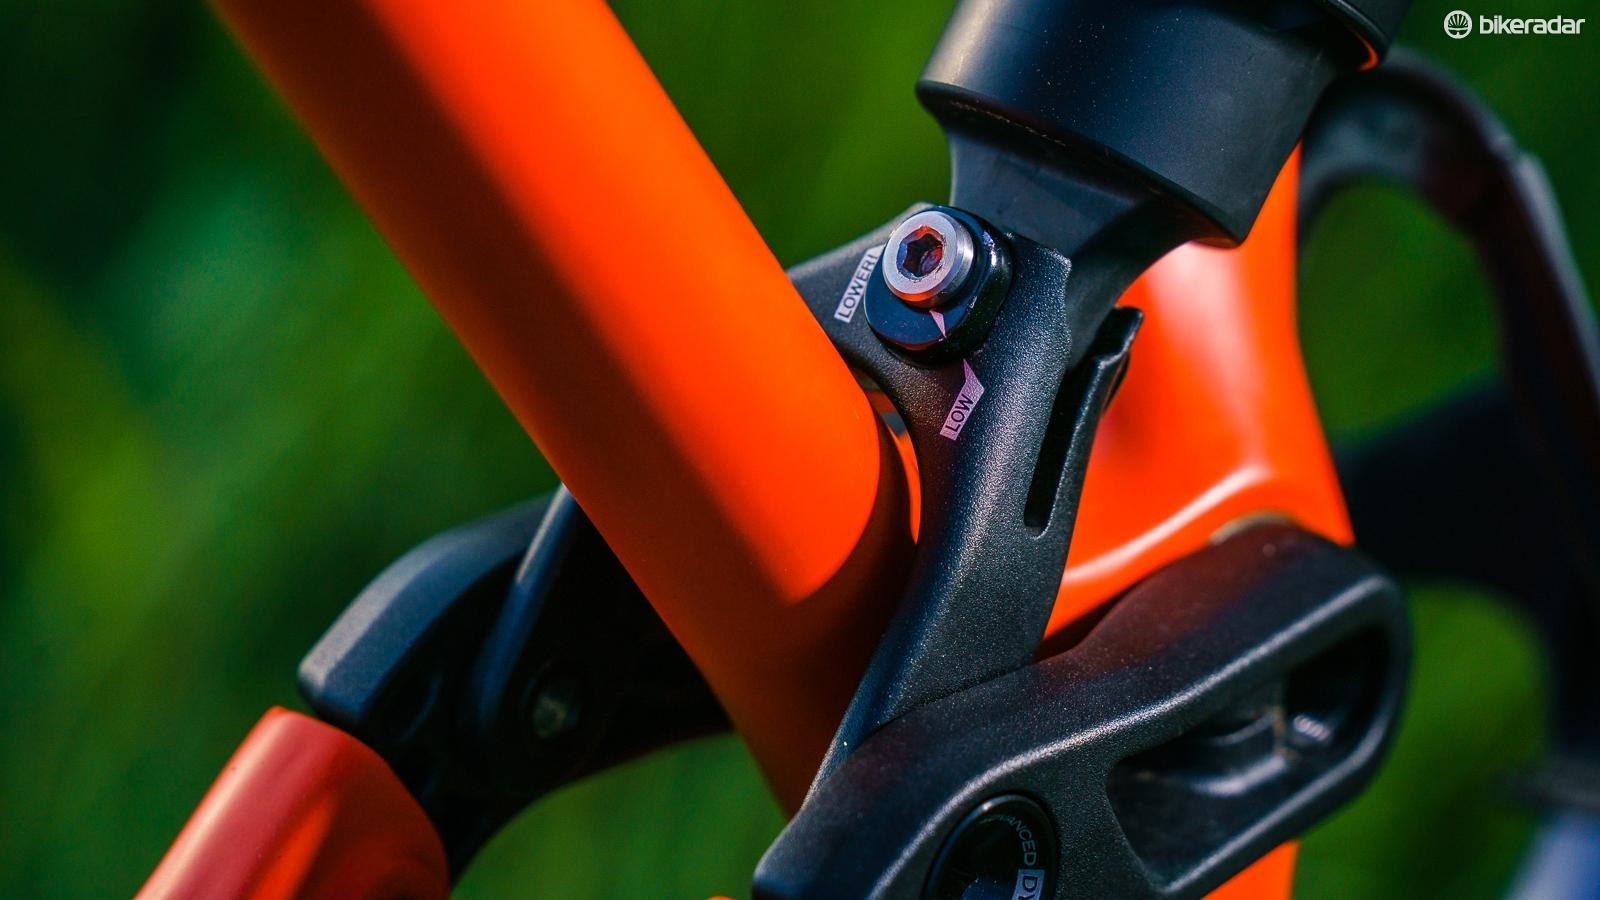 A flip-chip in the linkage gives you 7mm of bottom bracket drop adjustment and half a degree of head angle and seat angle adjustment